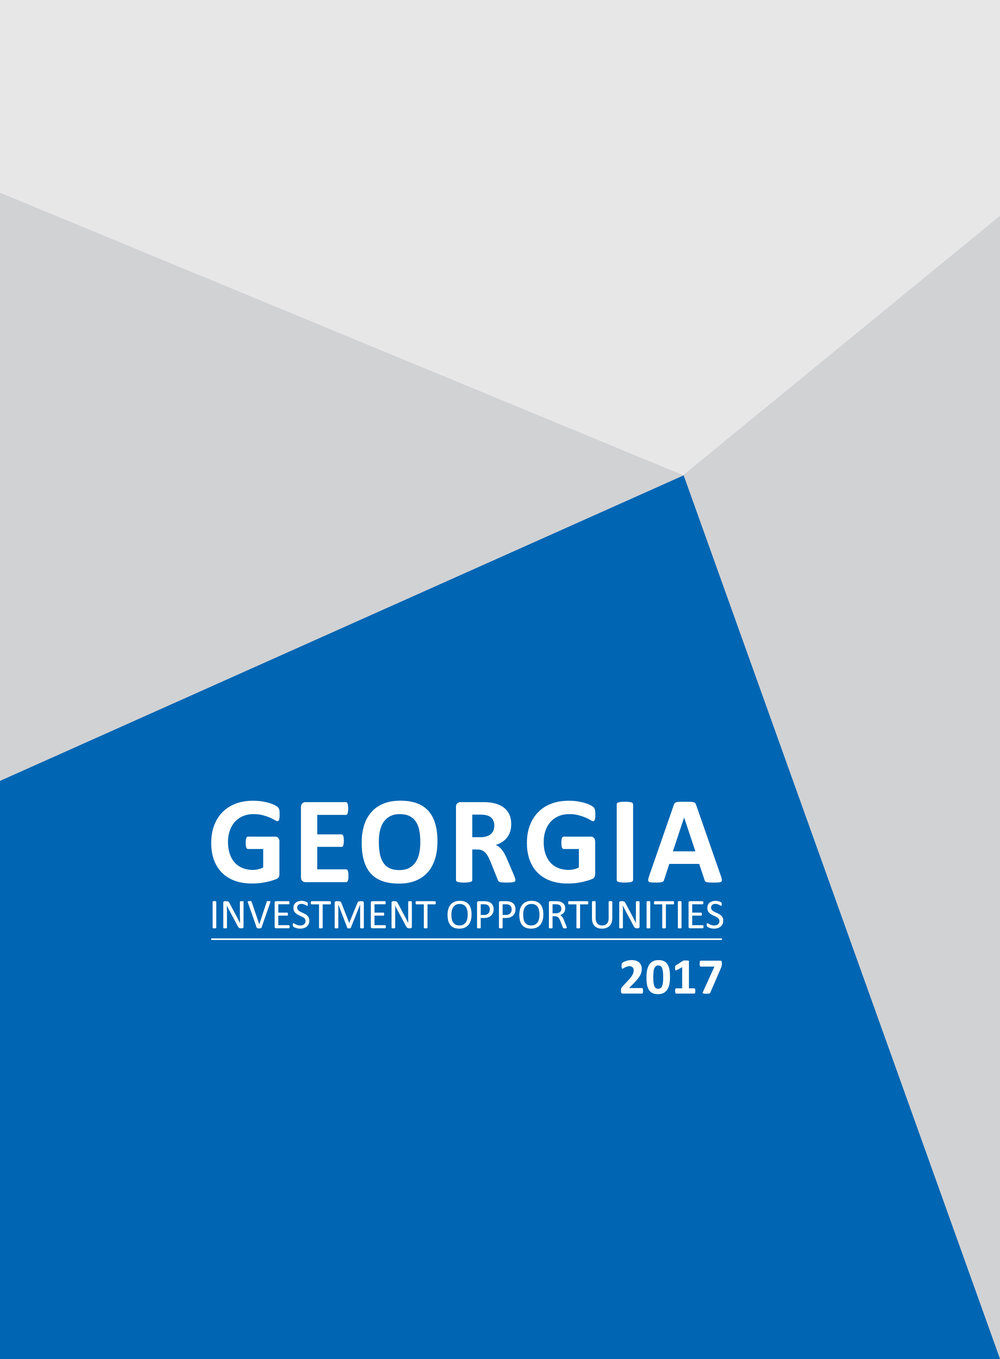 Click on the image to learn more about Investment Opportunities in GEORGIA